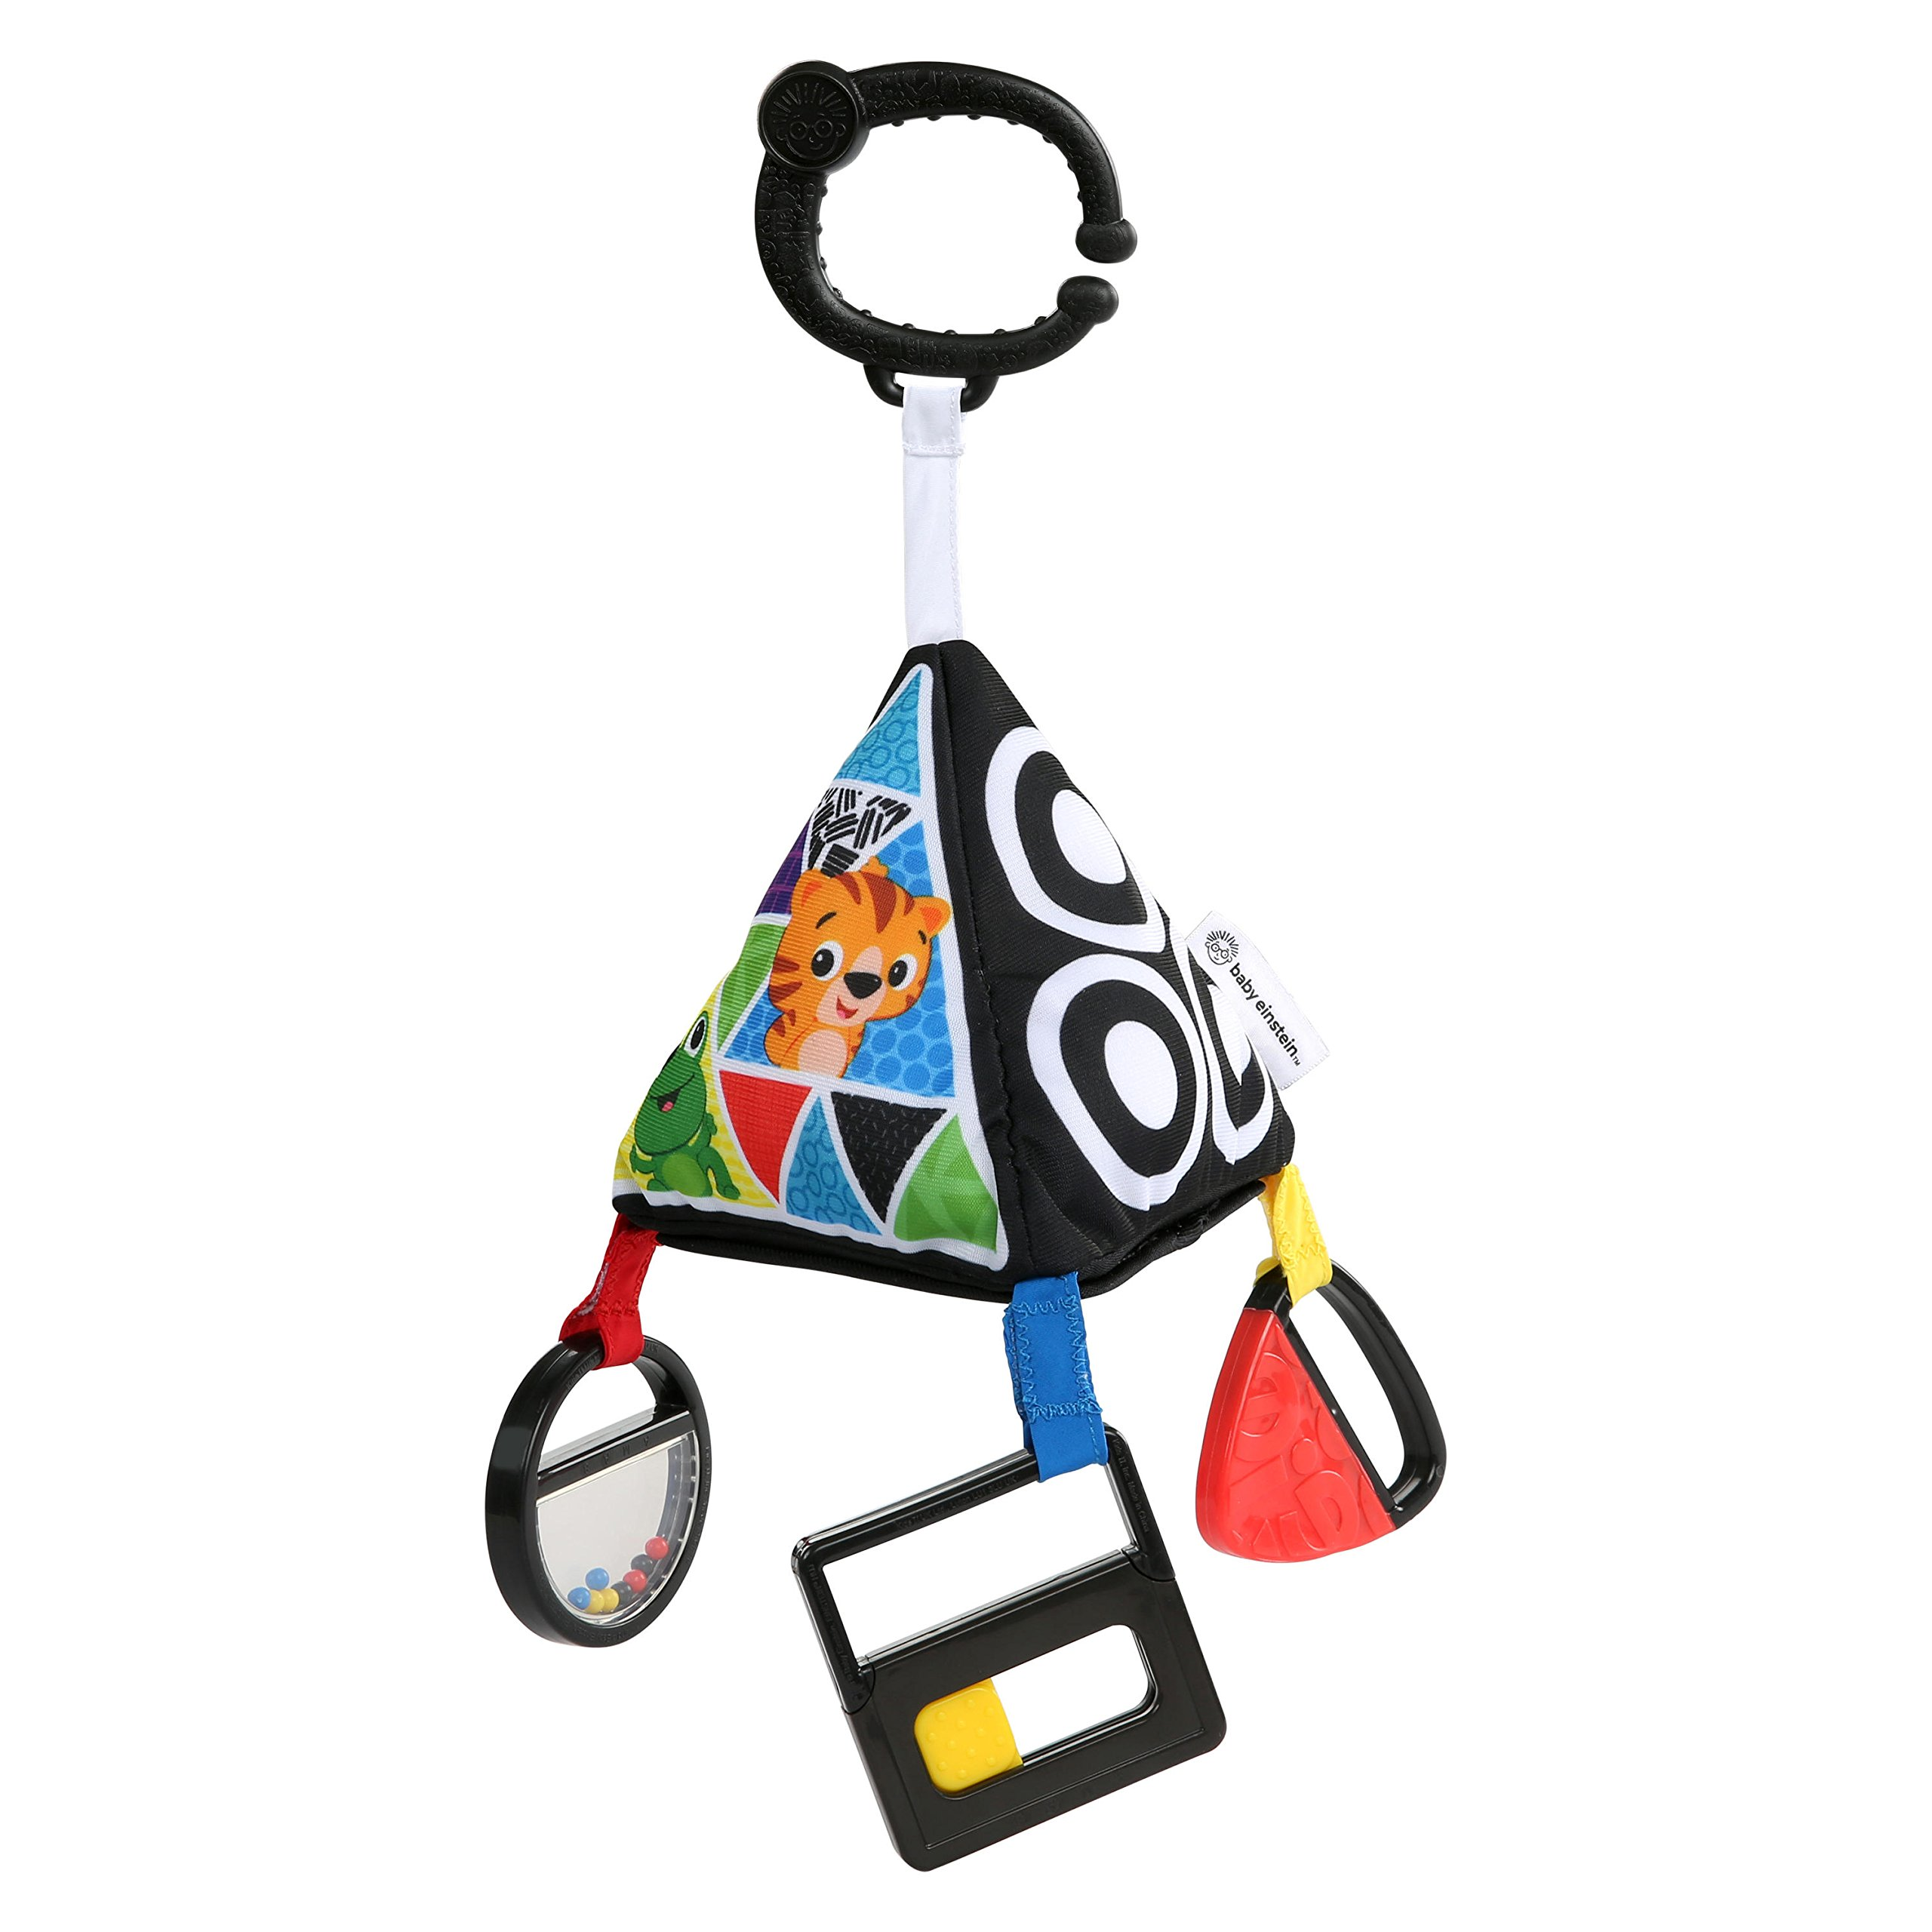 Baby Einstein Playful Pyramid High Contrast Take-Along Toy, Newborns and Up